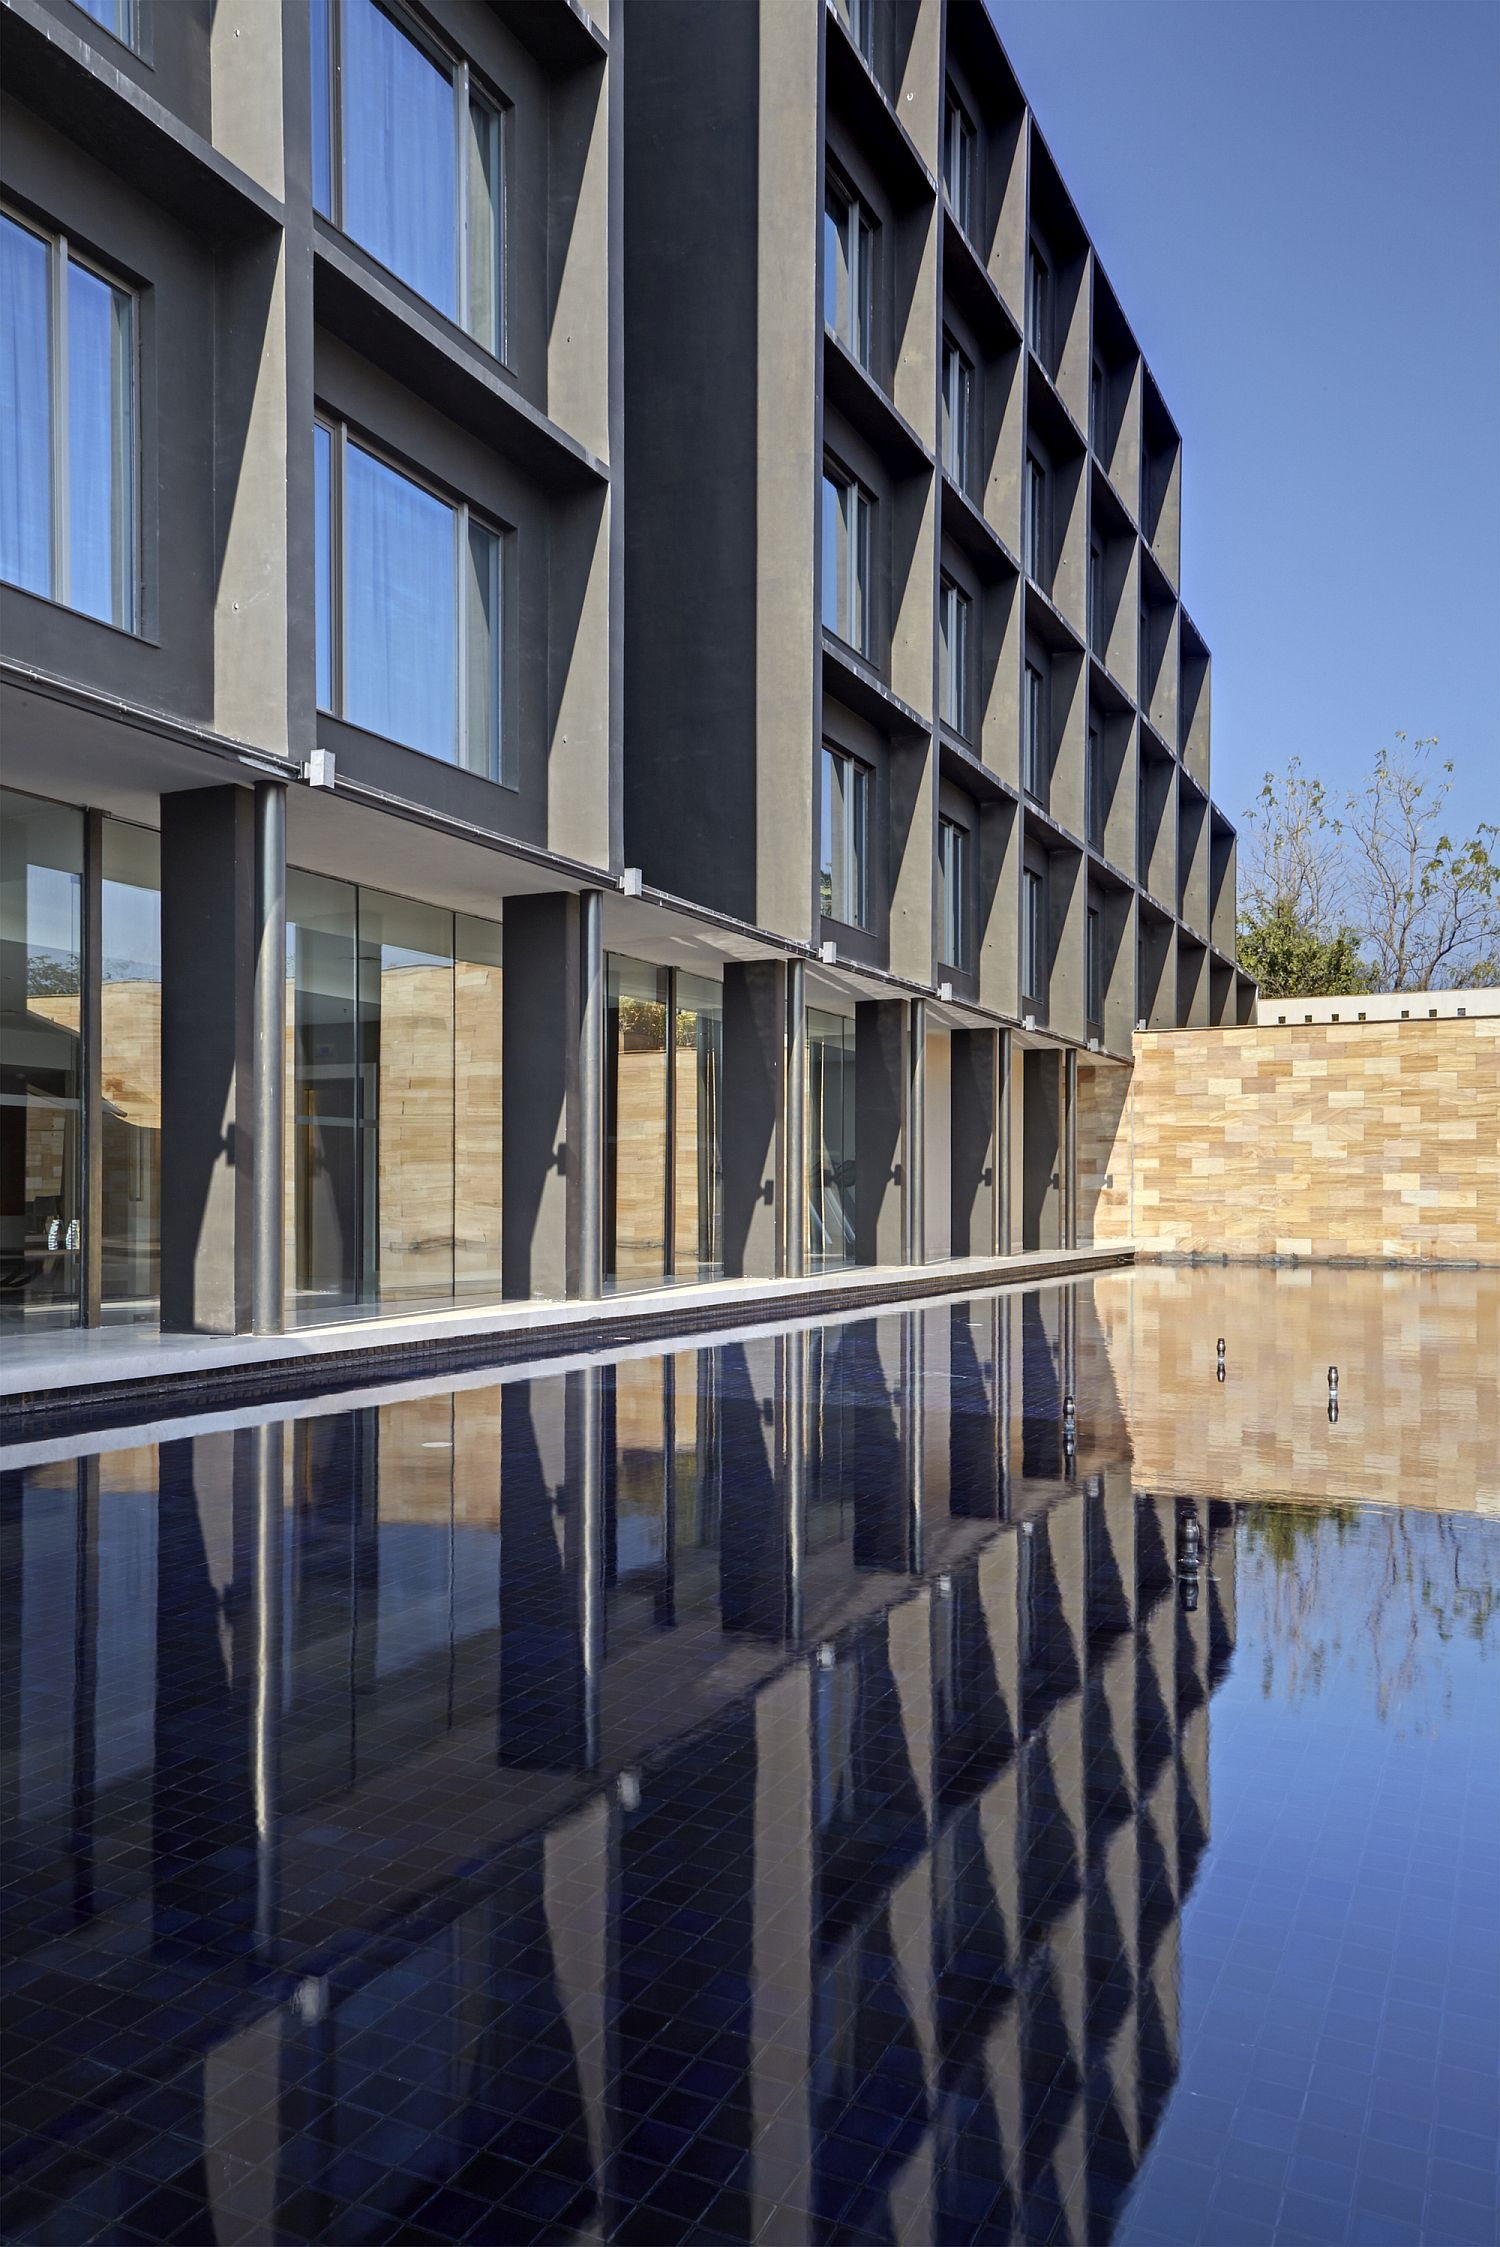 Water reflects the main structure of the hotel